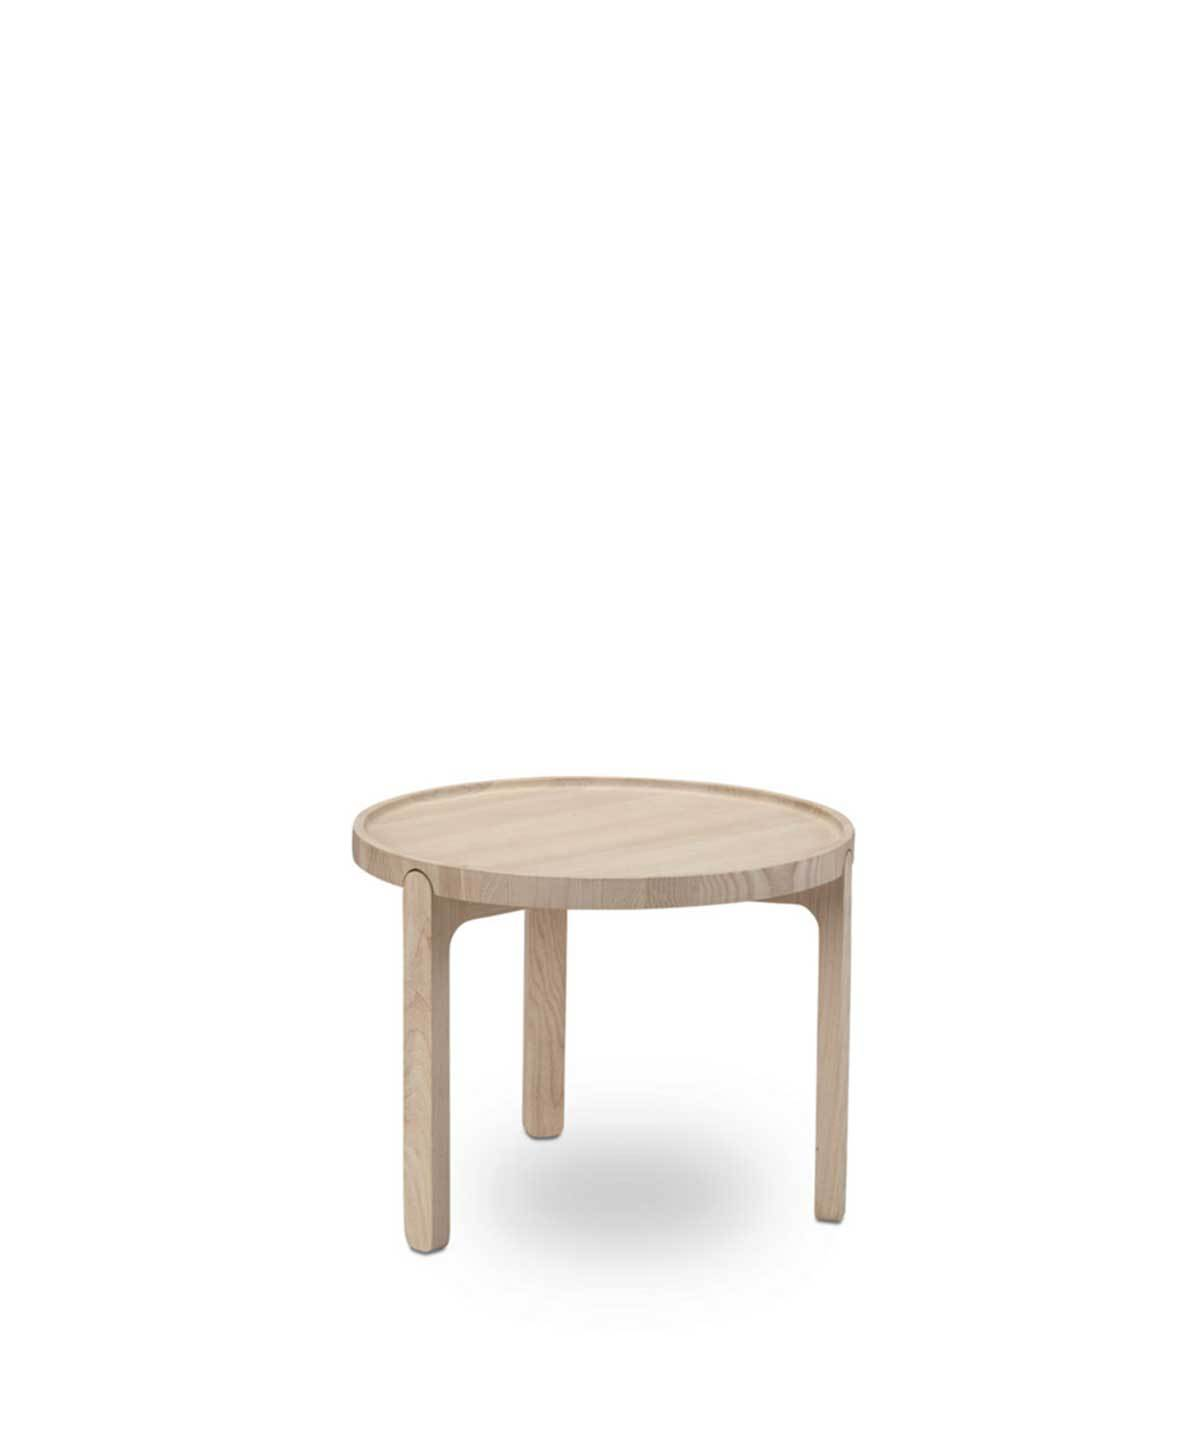 Indskud Tray Table by Skagerak | TRNK